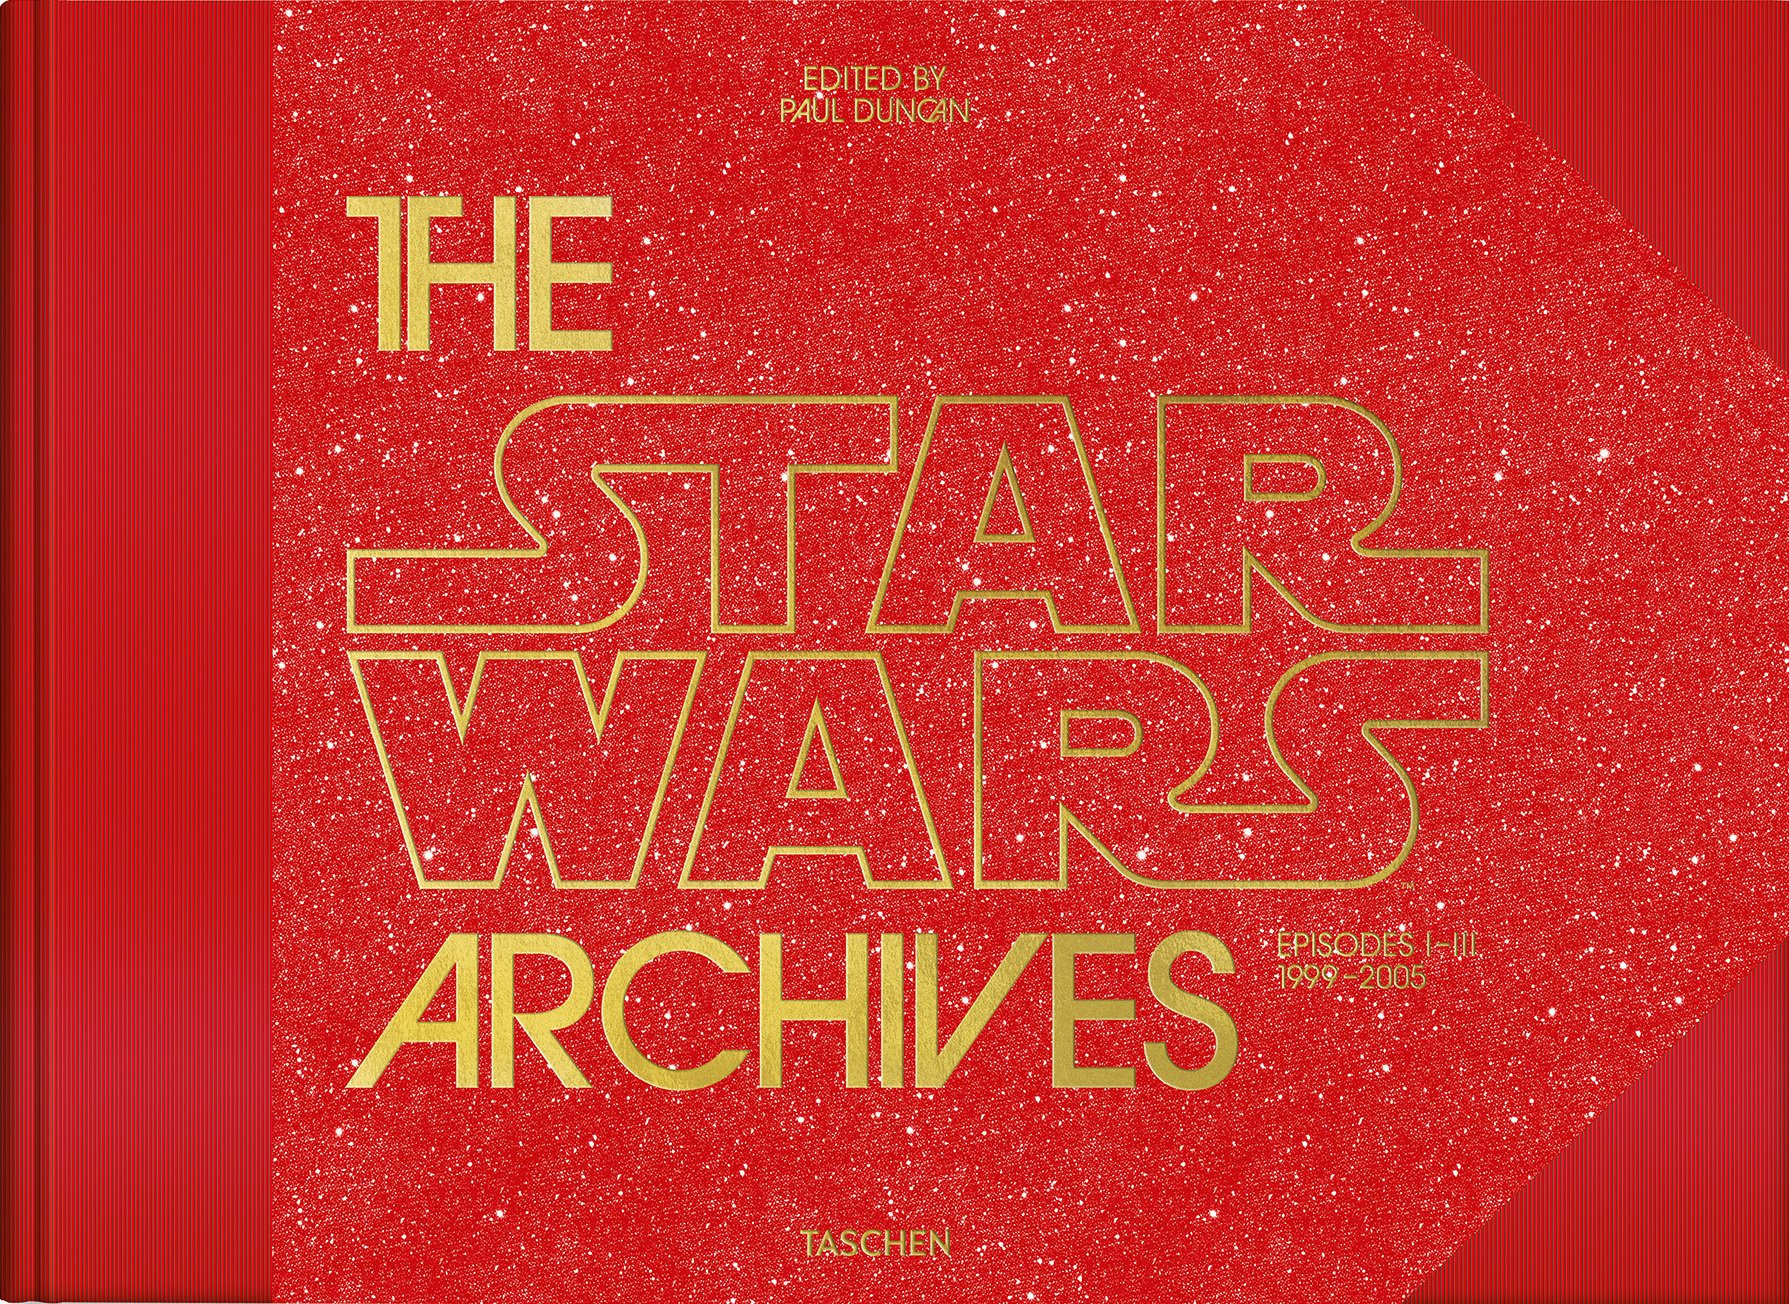 The Star Wars Archives: Episodes I-III 1999-2005